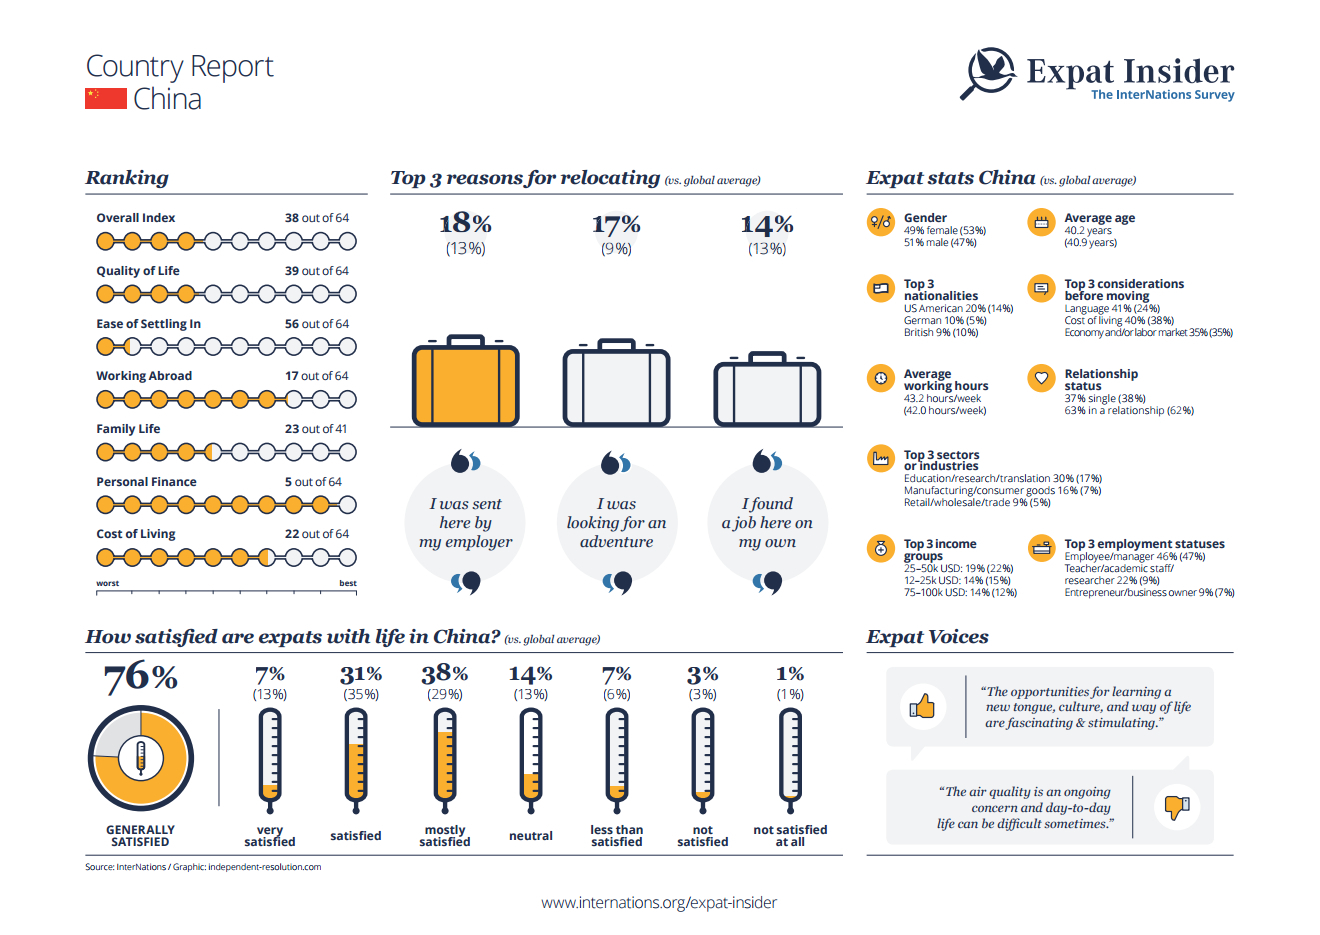 Expat statistics for China - infographic